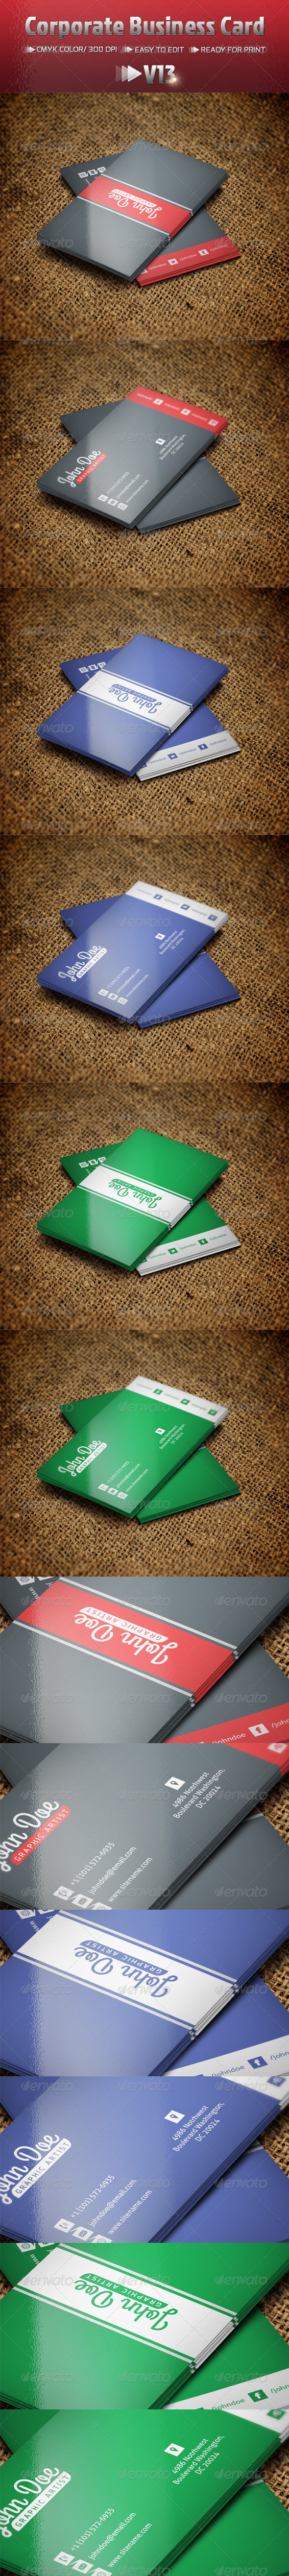 Corporate Business Card V13 - Business Cards Print Templates